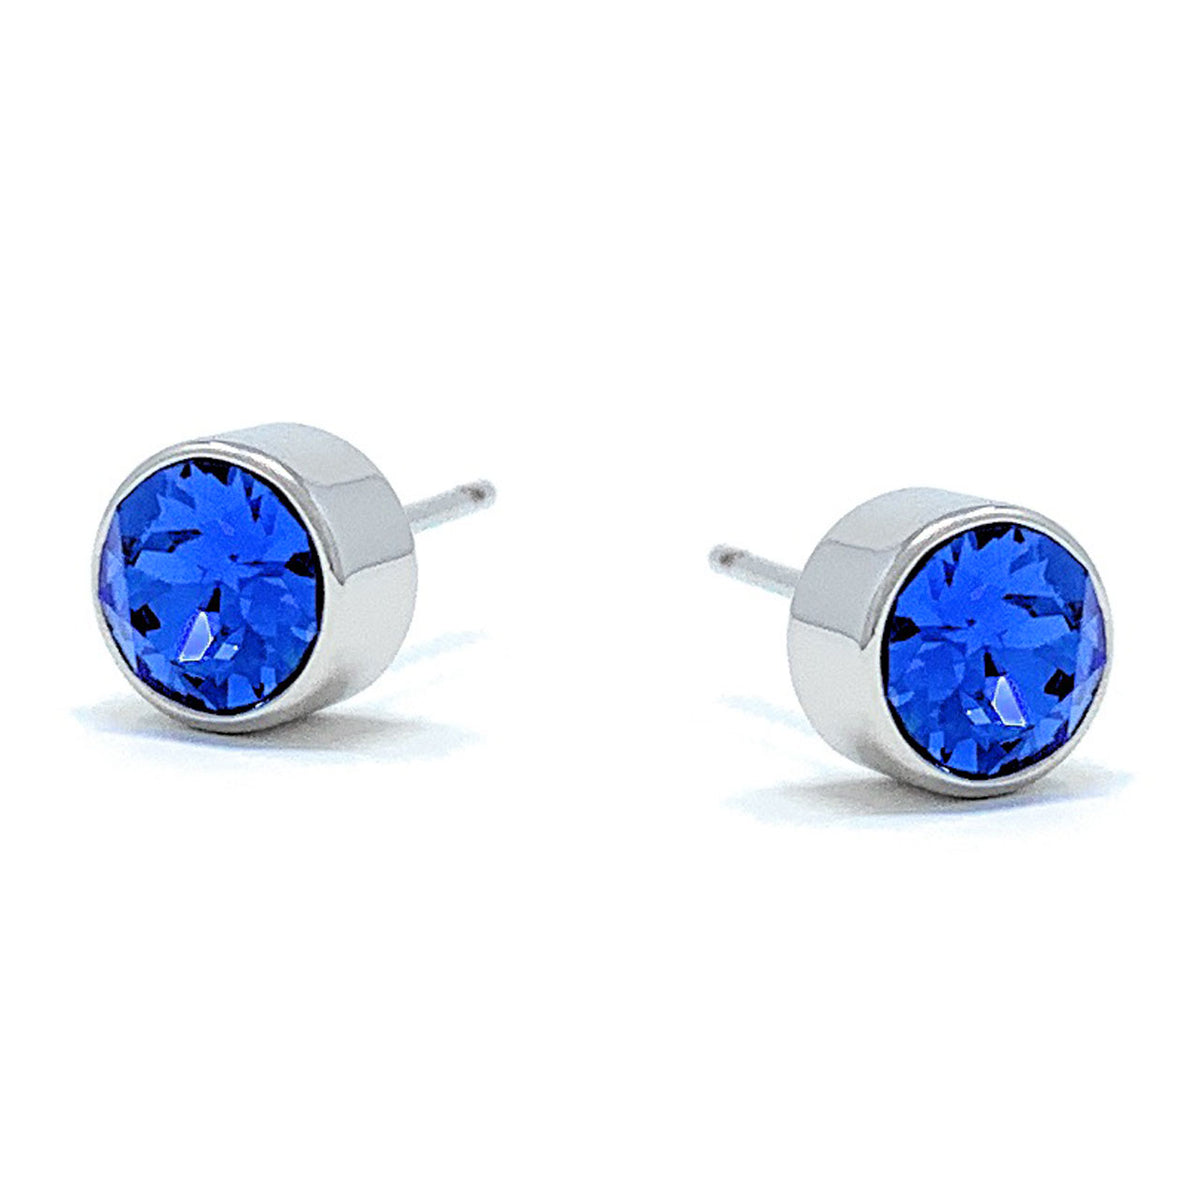 Small Stud Earrings with Blue Light Sapphire Round Crystals from Swarovski Silver Toned Rhodium Plated